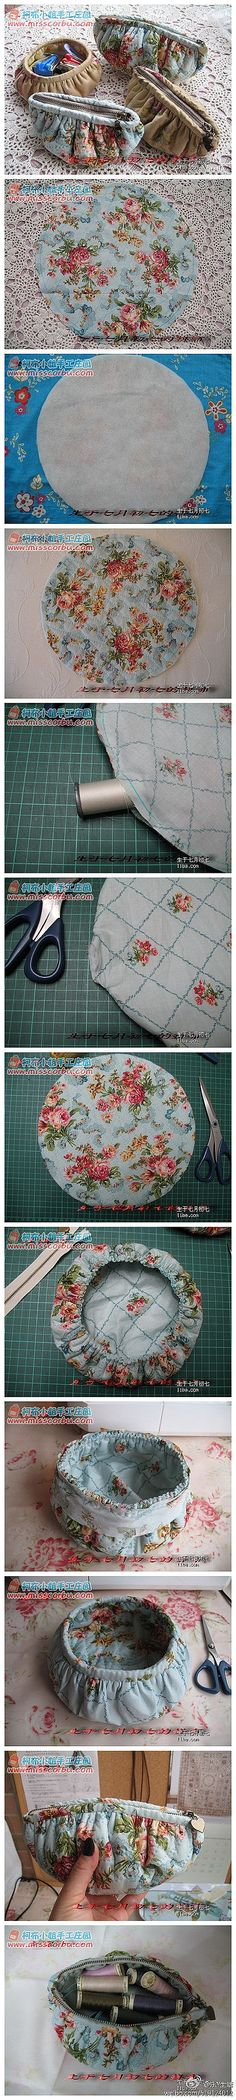 Shabby chic from vintage Laura Ashley pri. Shabby chic from vintage Laura Ashley prints, bedding or dres… circle pouch. Shabby chic from vintage Laura Ashley prints, bedding or dresses. Sewing Tutorials, Sewing Hacks, Sewing Patterns, Fabric Crafts, Sewing Crafts, Sewing Projects, Ideas Paso A Paso, Diy Sac, Fabric Bags